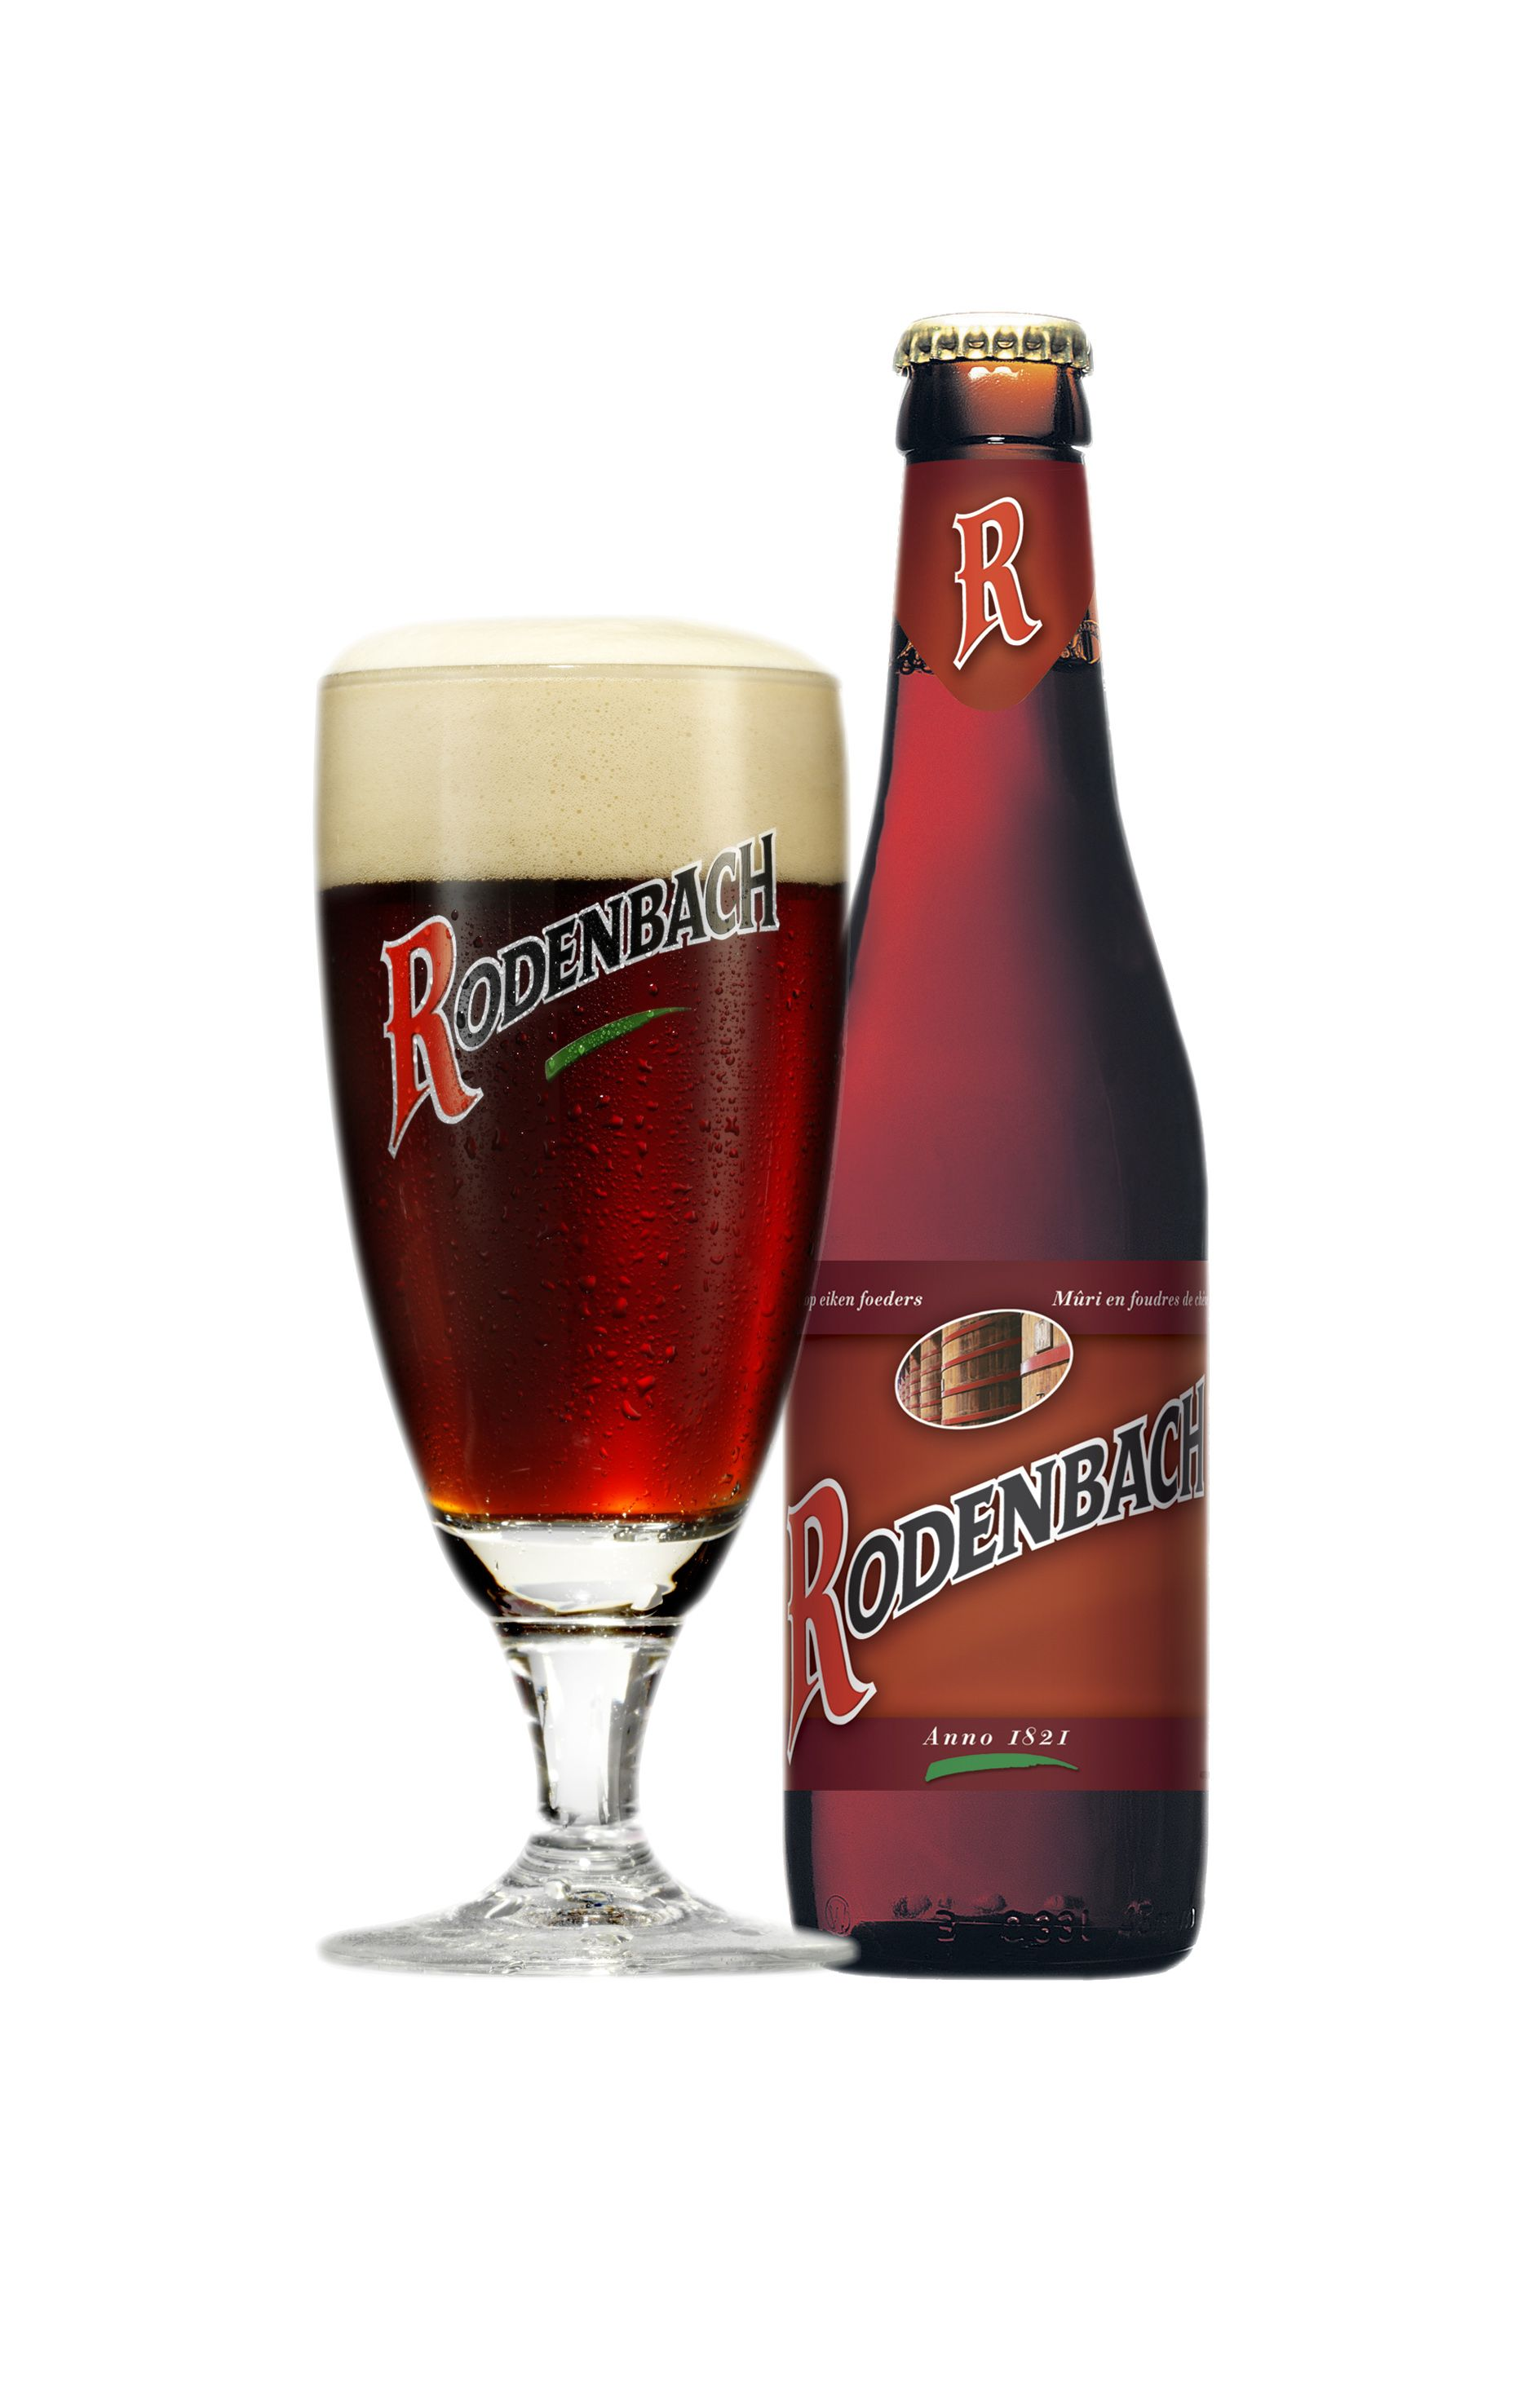 Rodenbach Sour Beer Beer Brands Wine And Beer Beer